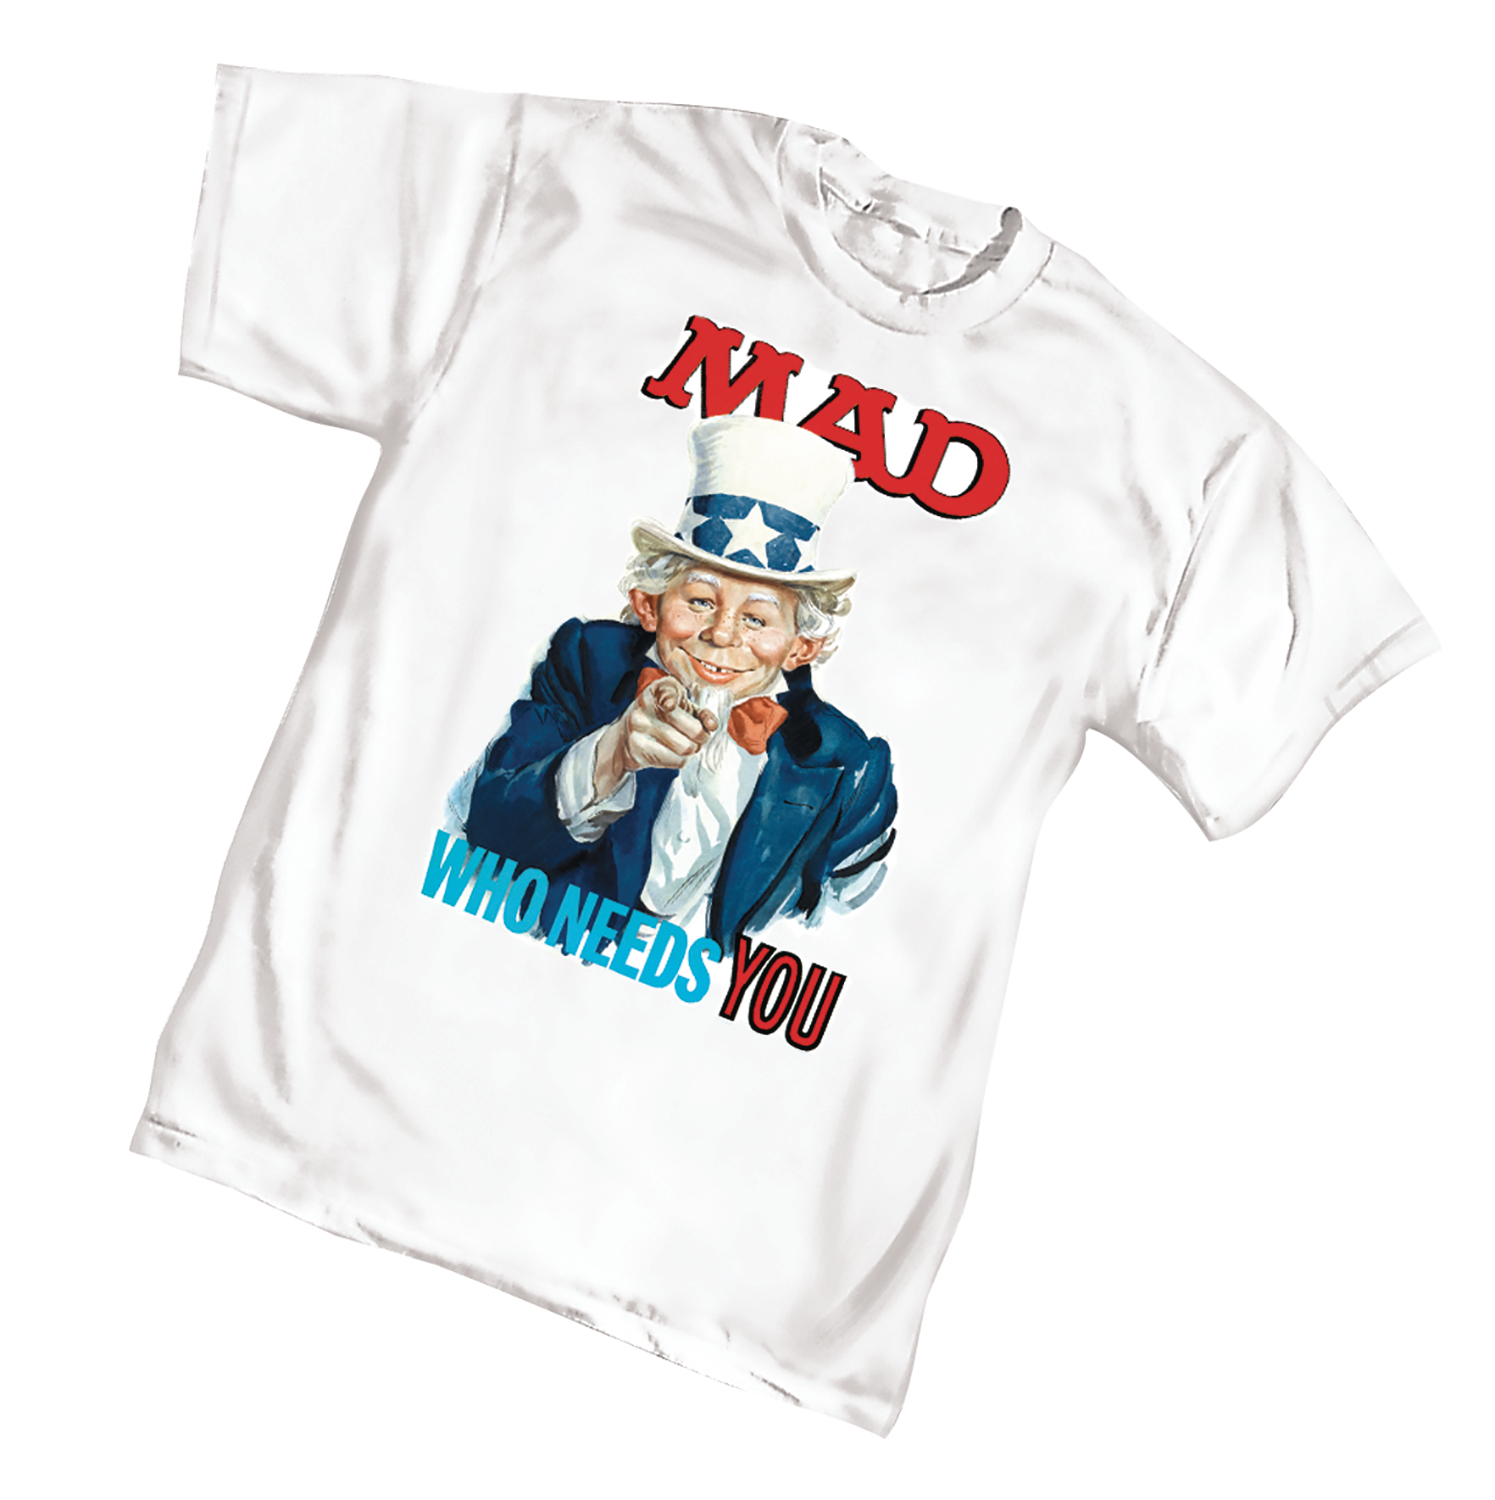 MAD NEEDS YOU T/S SM